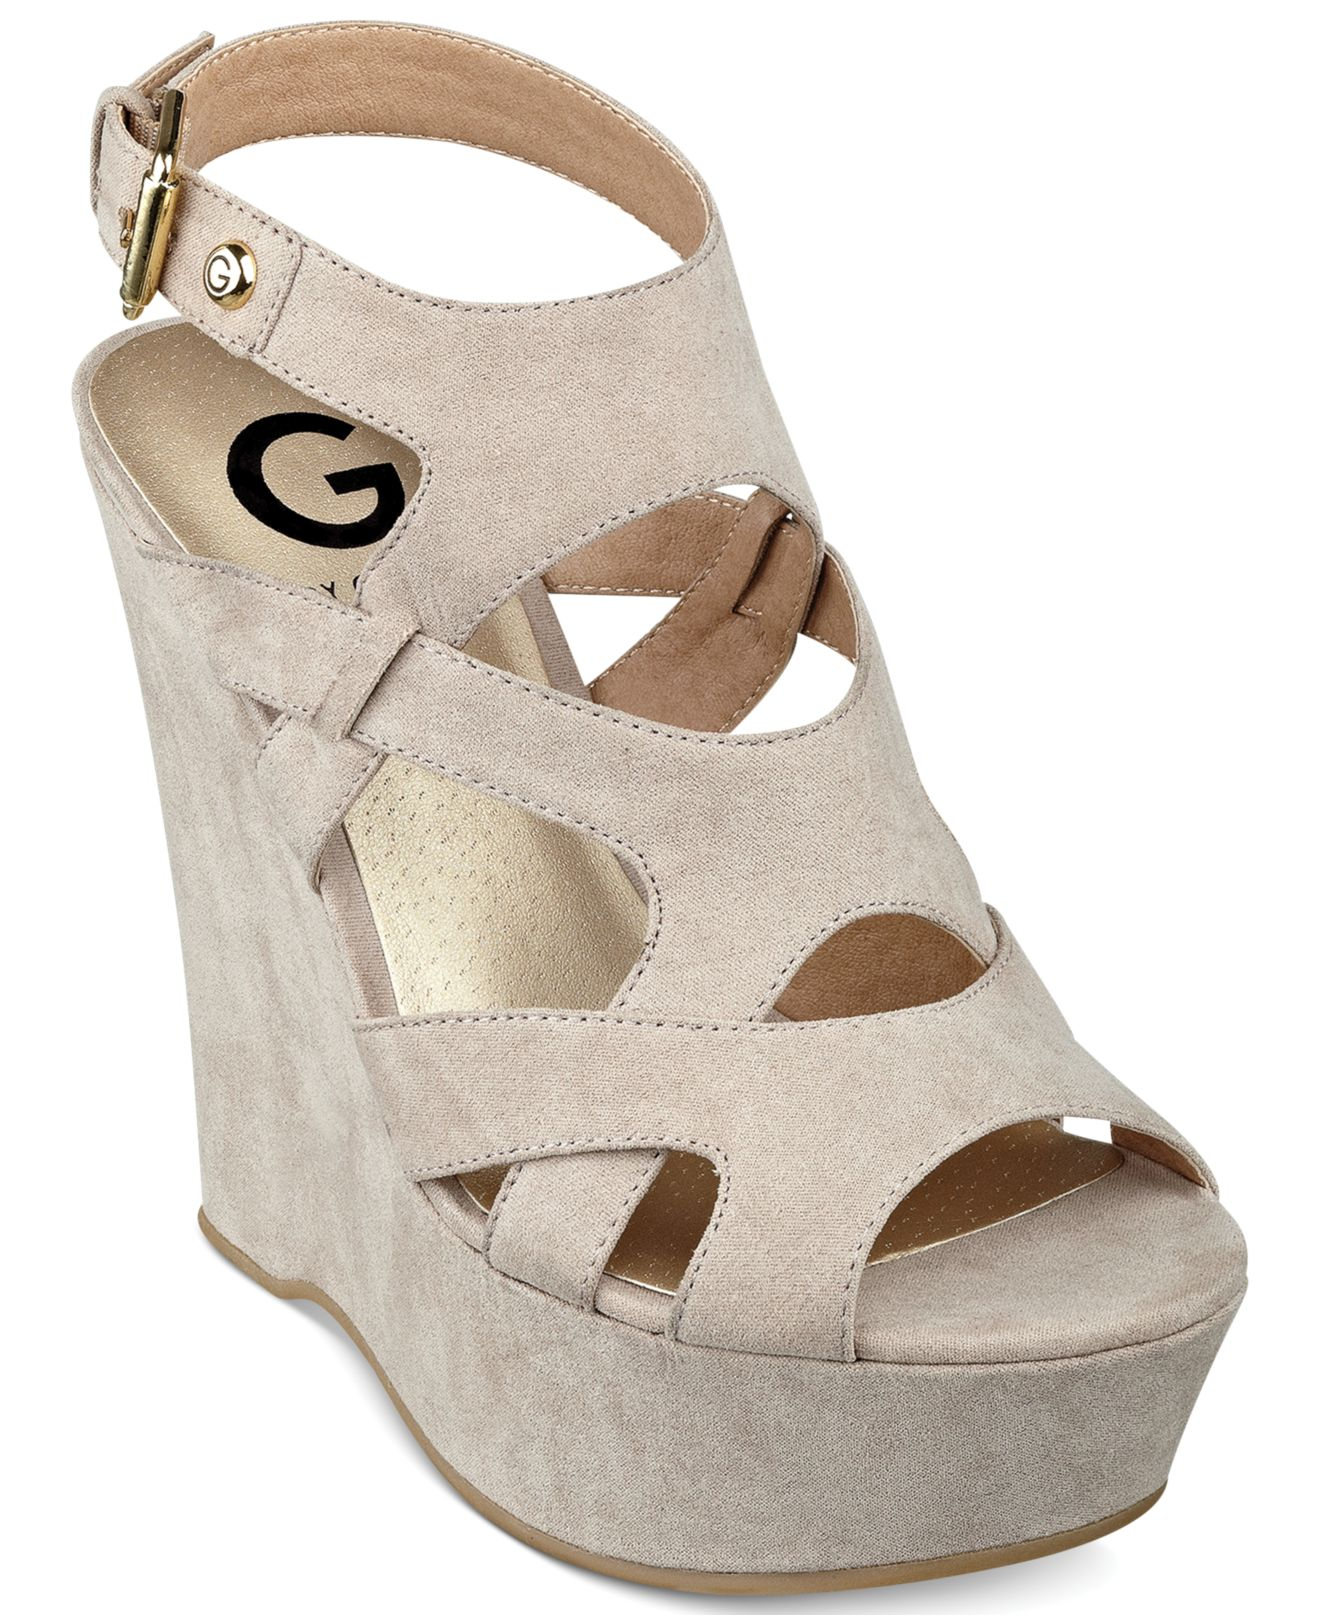 Lyst G By Guess Hizza Platform Wedge Sandals In Natural